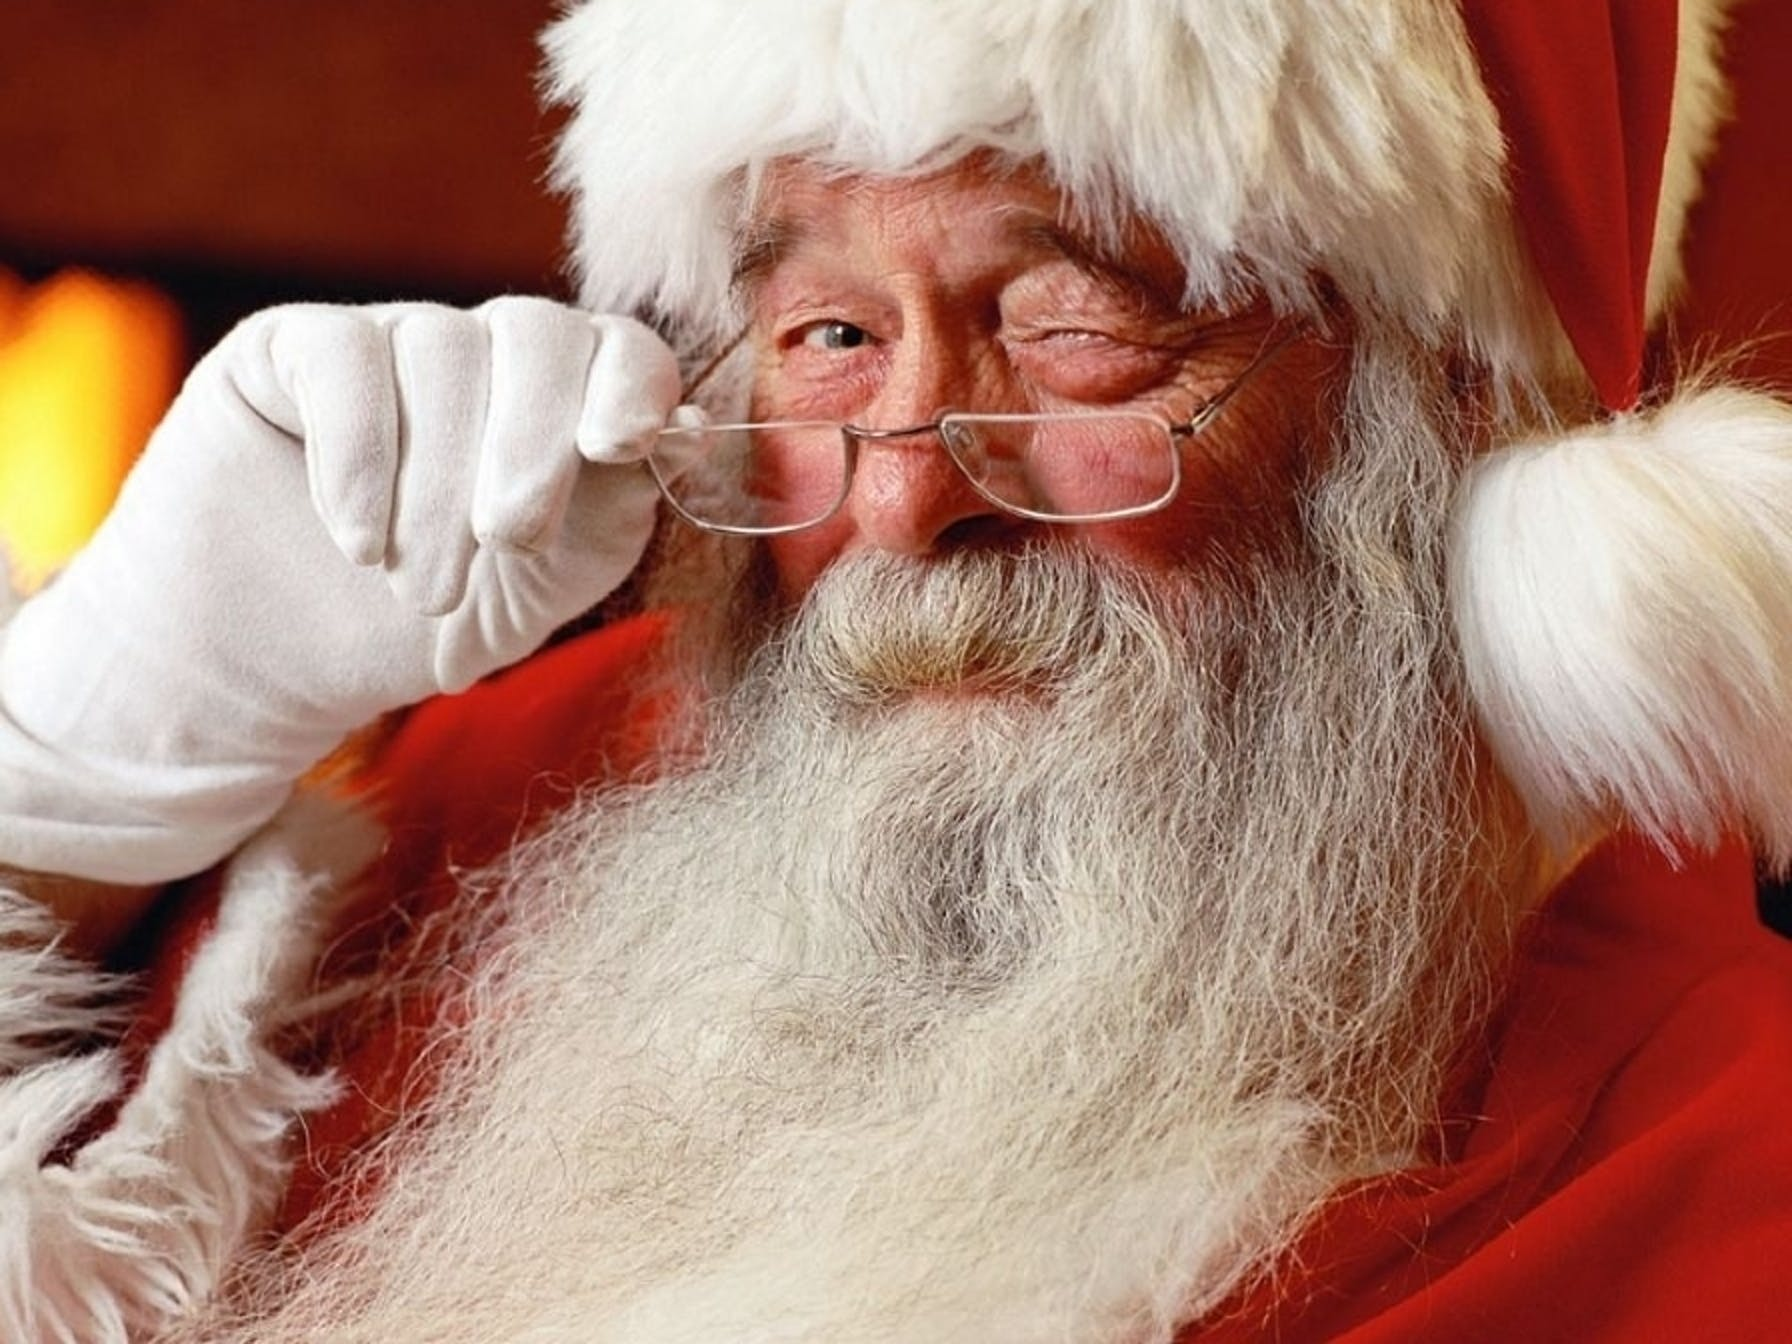 Animal Fur Clithing Porn santa claus is a real sex symbol | inverse